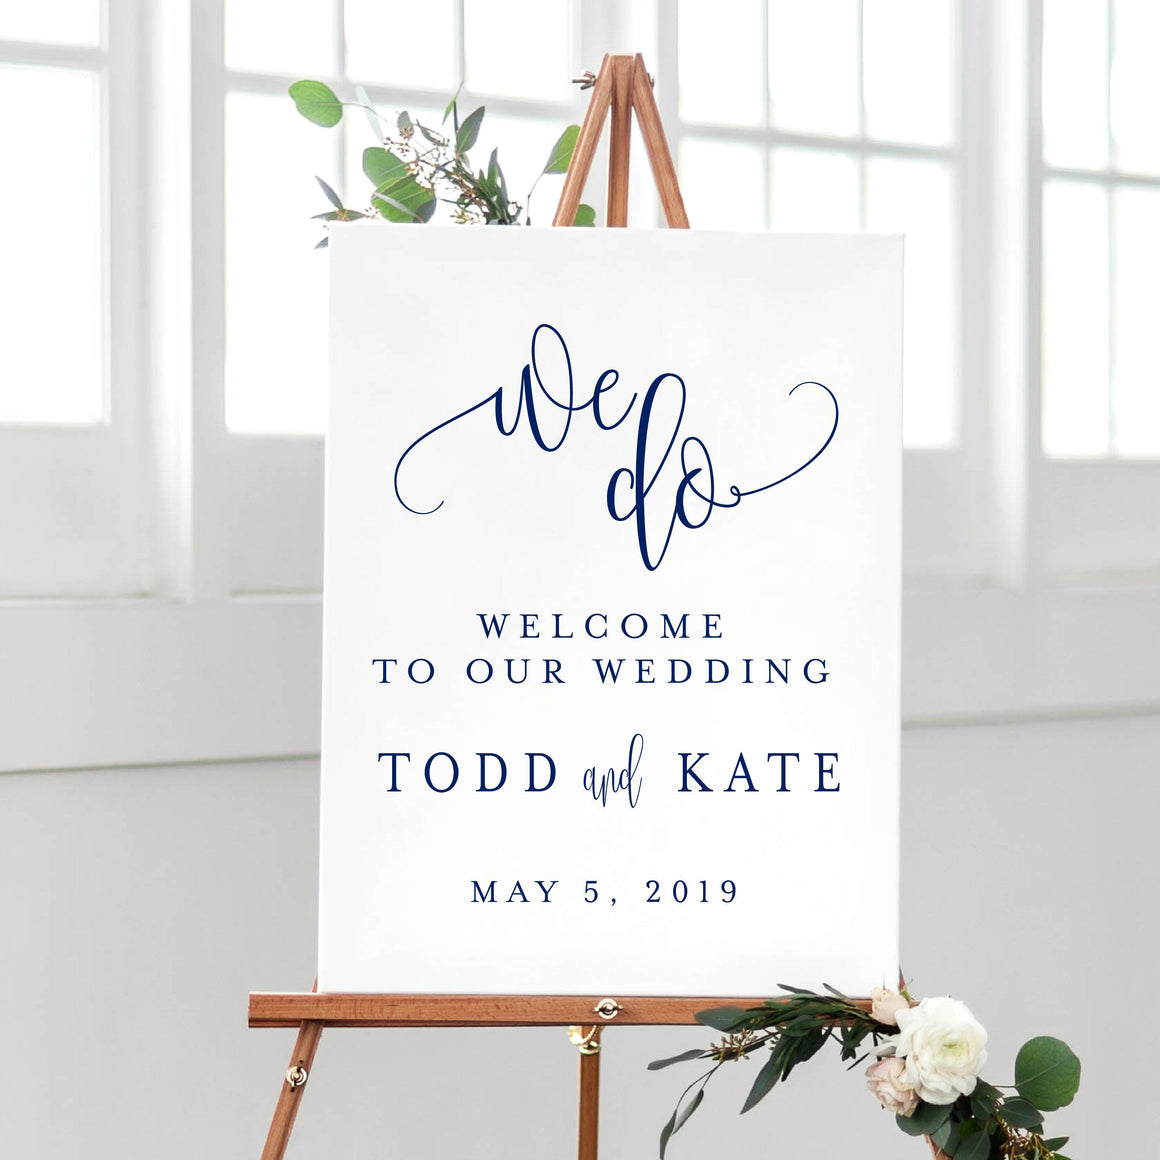 Welcome Prints - We Do - Wedding Welcome Print